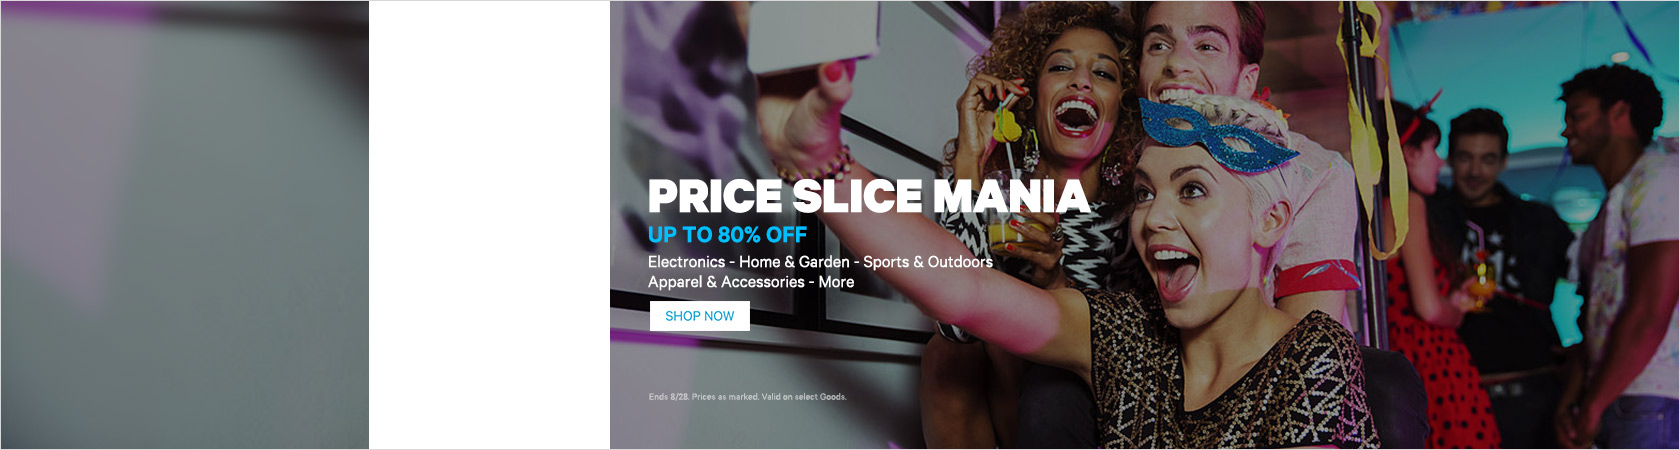 Price Slice Sale